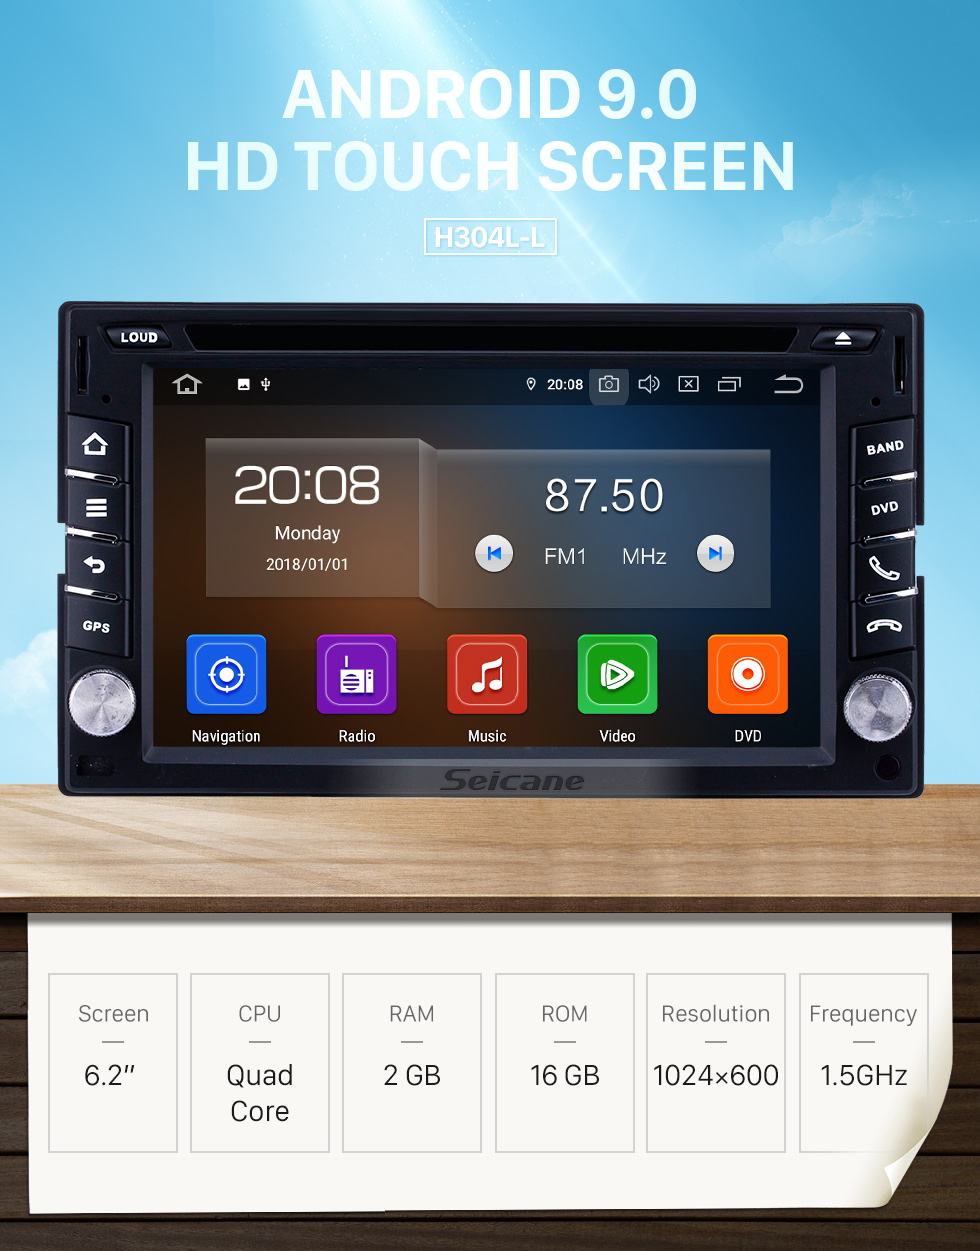 Seicane OEM Android 9.0 6.2 inch HD Touchscreen GPS Navigation Universal Radio Bluetooth AUX Carplay Music support 1080P Digital TV Rearview camera